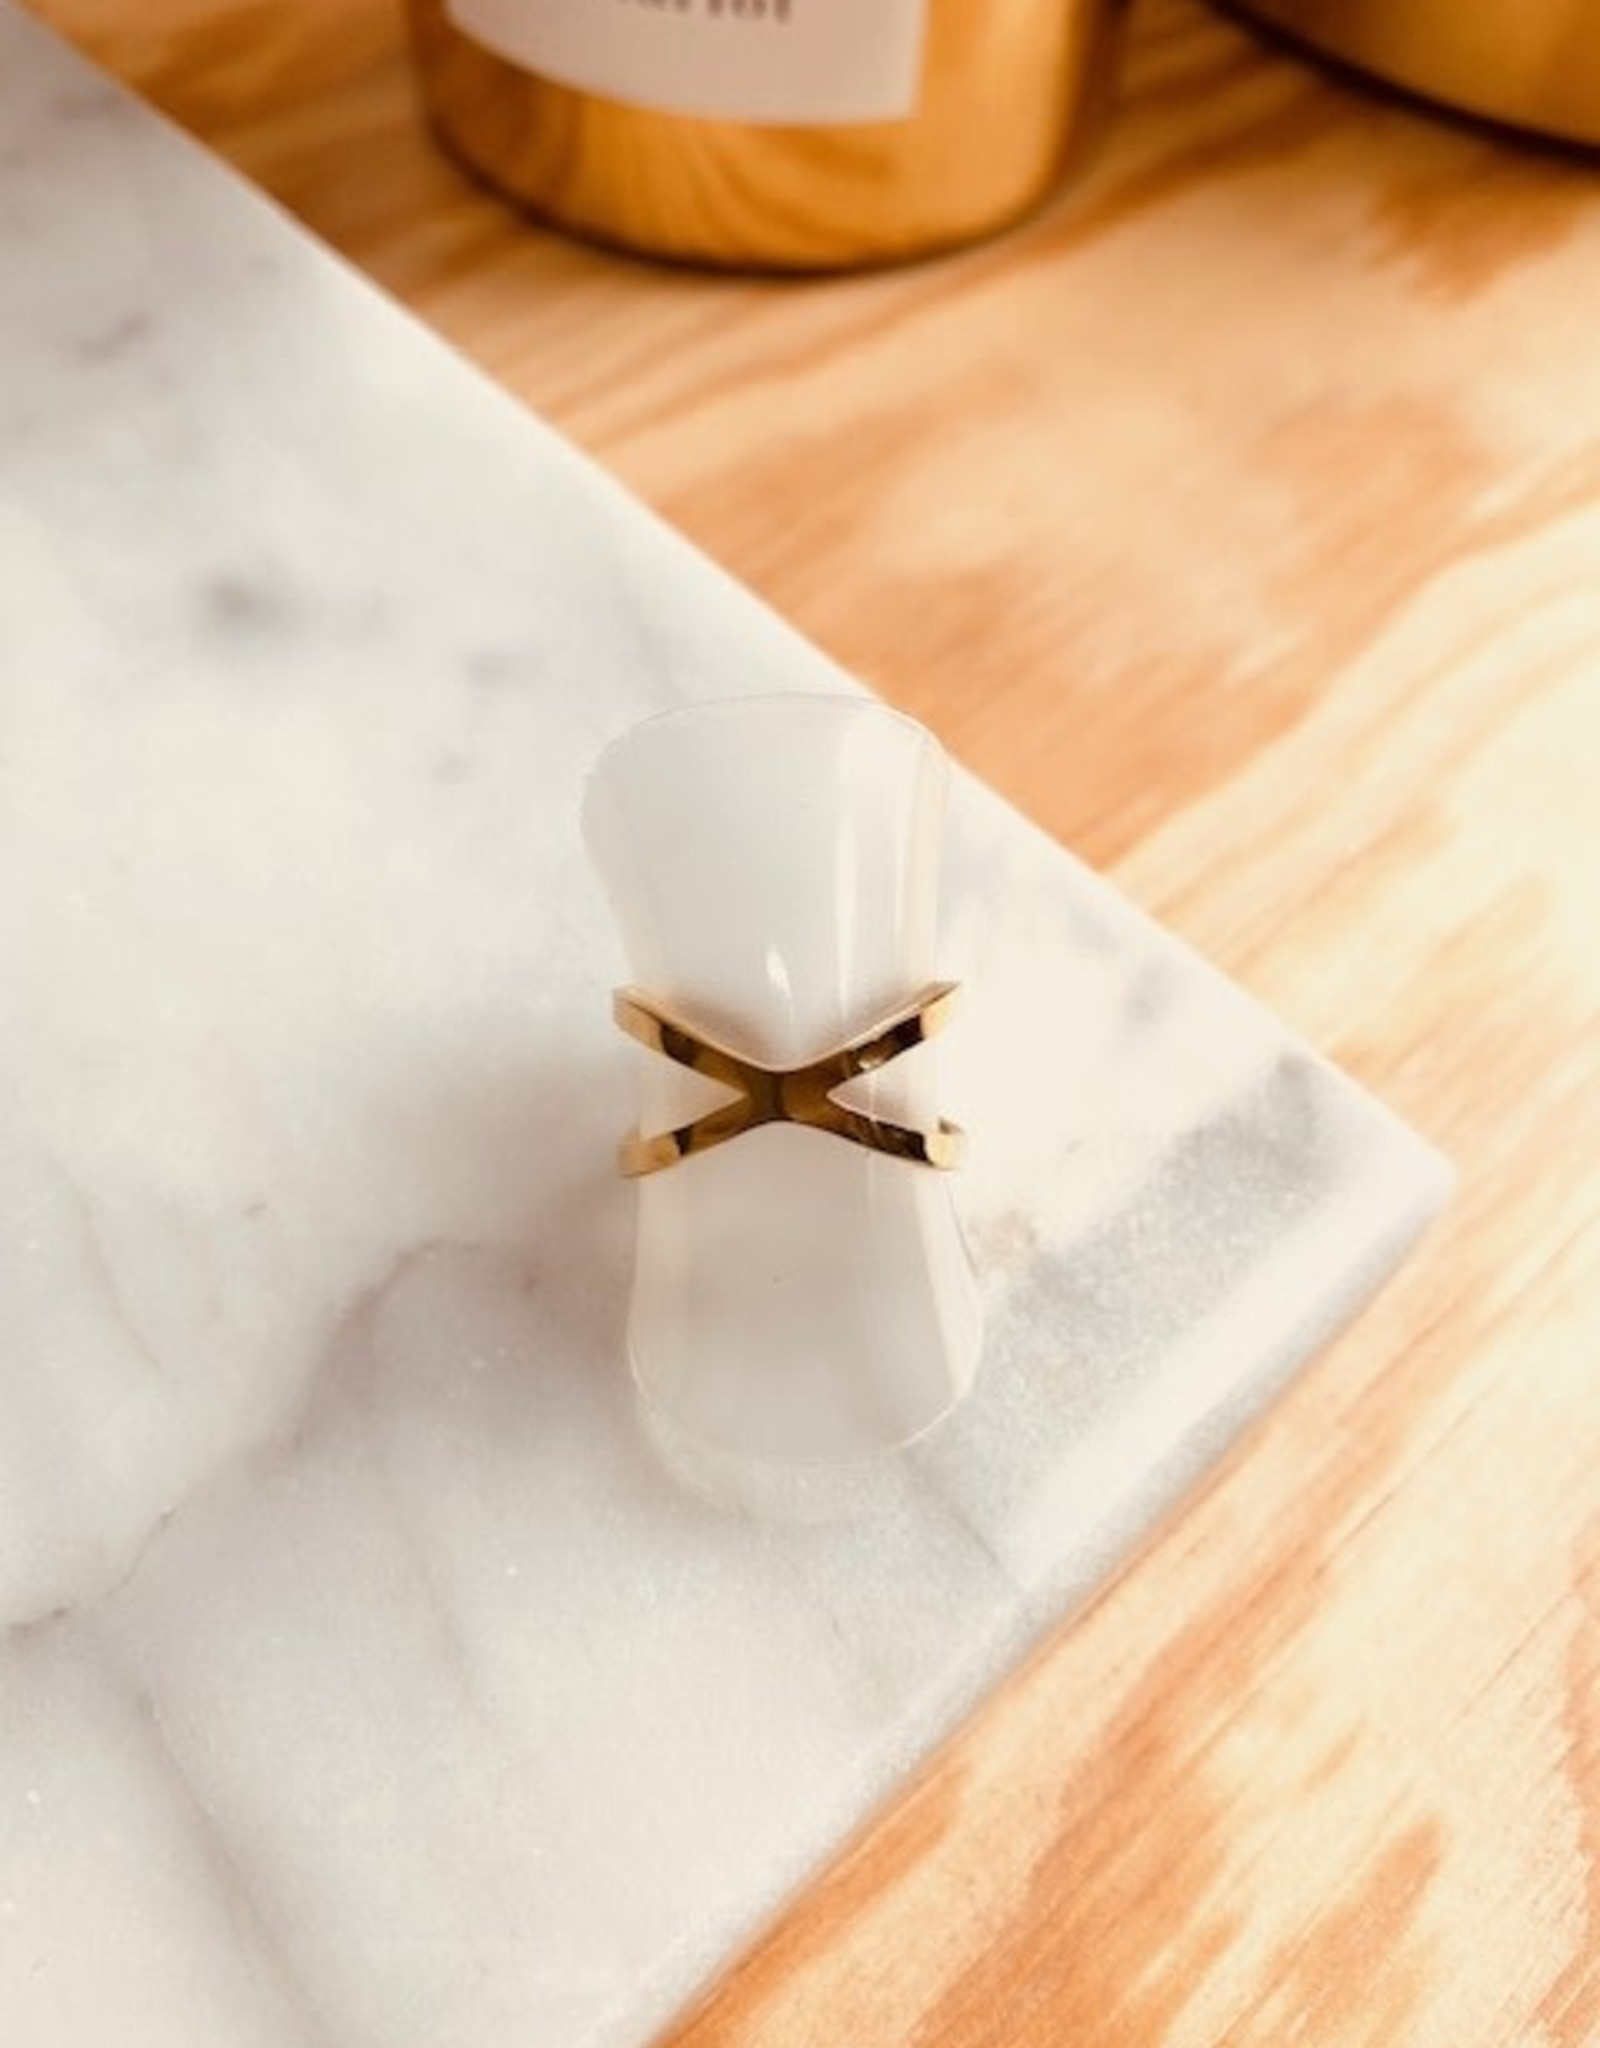 The Golden House Ring 007 - 1 maat